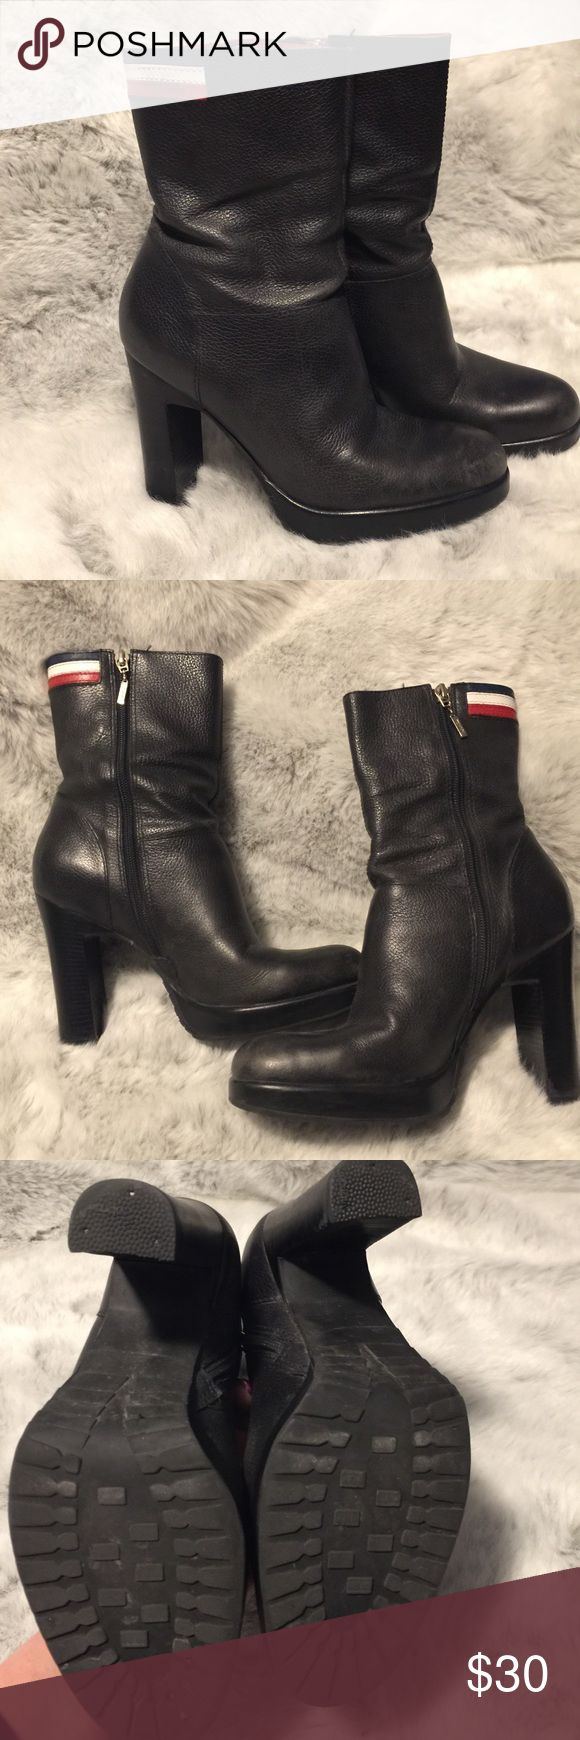 "Tommy Hilfiger black ""Cyndi"" boots size 8 1/2 Tommy Hilfiger ""Cyndi"" boots, black, size 8 1/2, heel approx 4"", in good used condition from a smoke free home. Tommy Hilfiger Shoes Heeled Boots"